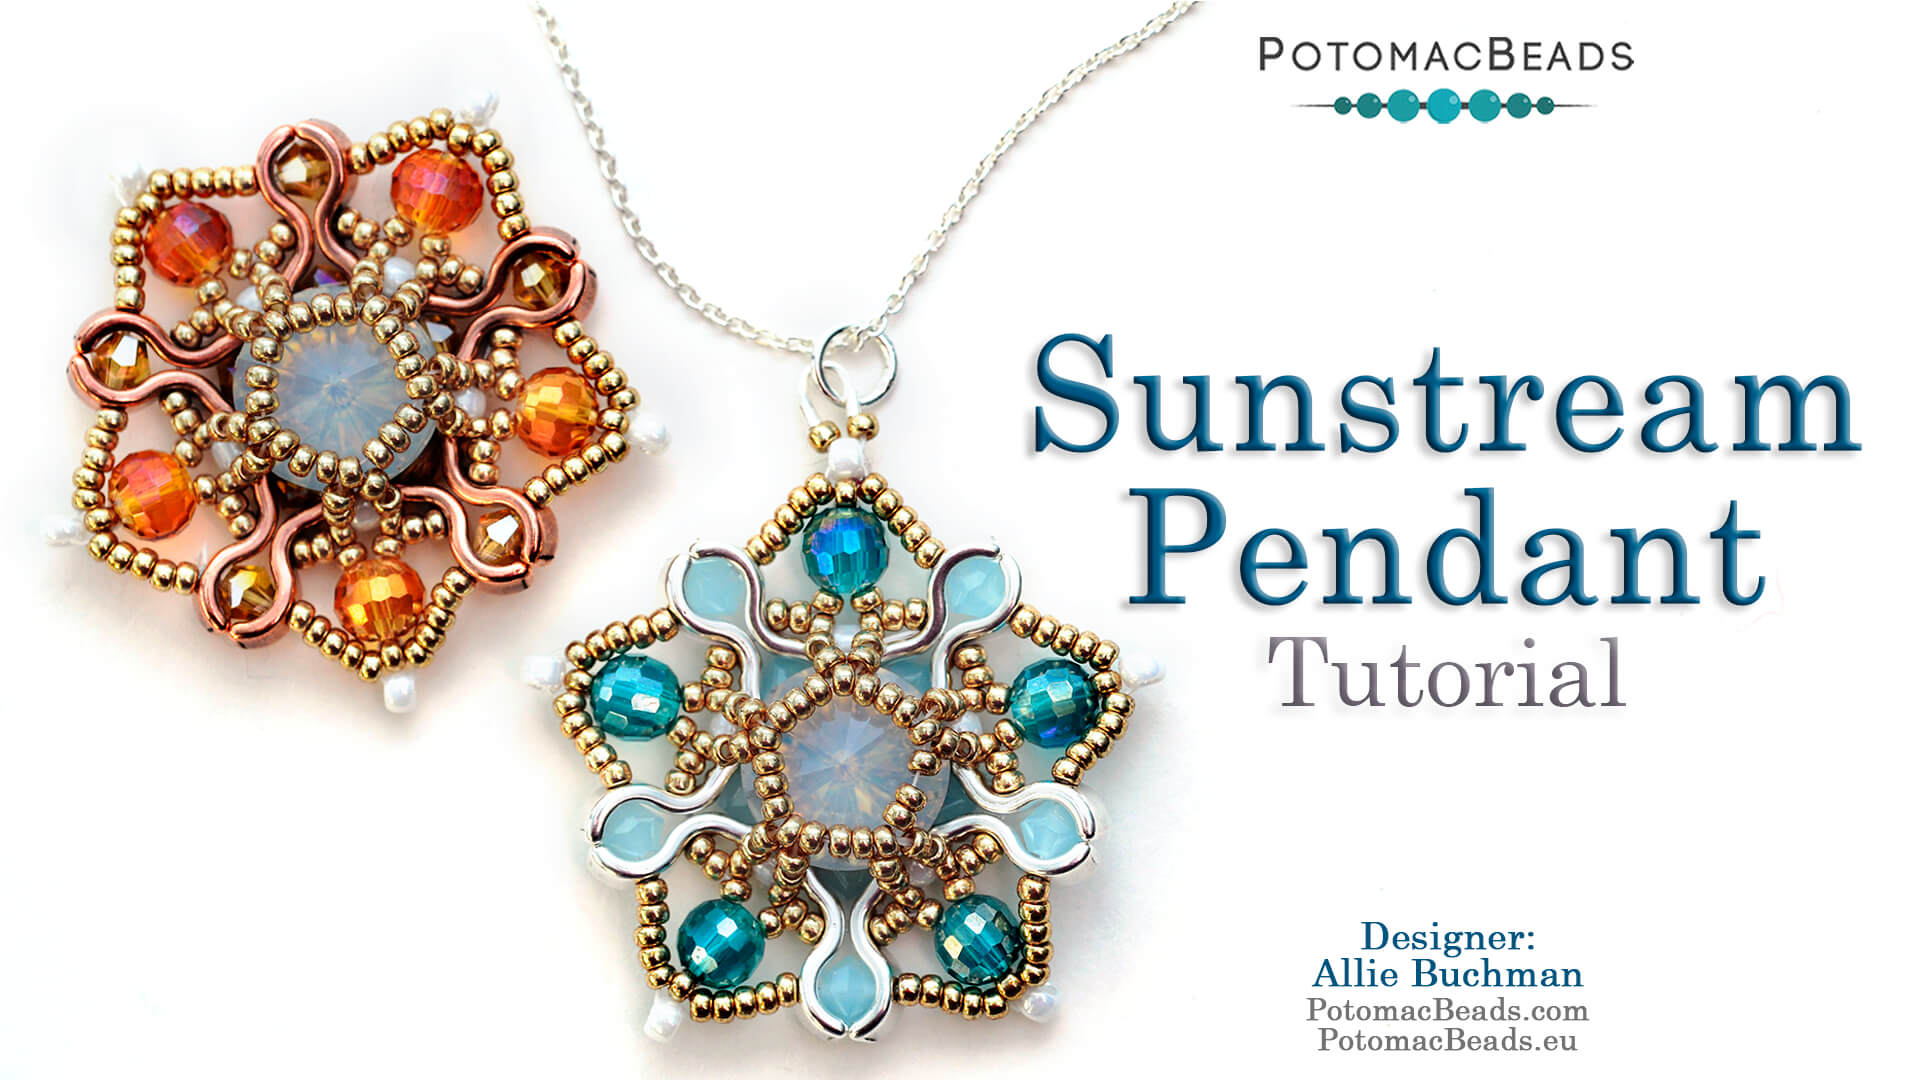 How to Bead Jewelry / Videos Sorted by Beads / Potomax Metal Bead Videos / Sunstream Pendant Tutorial